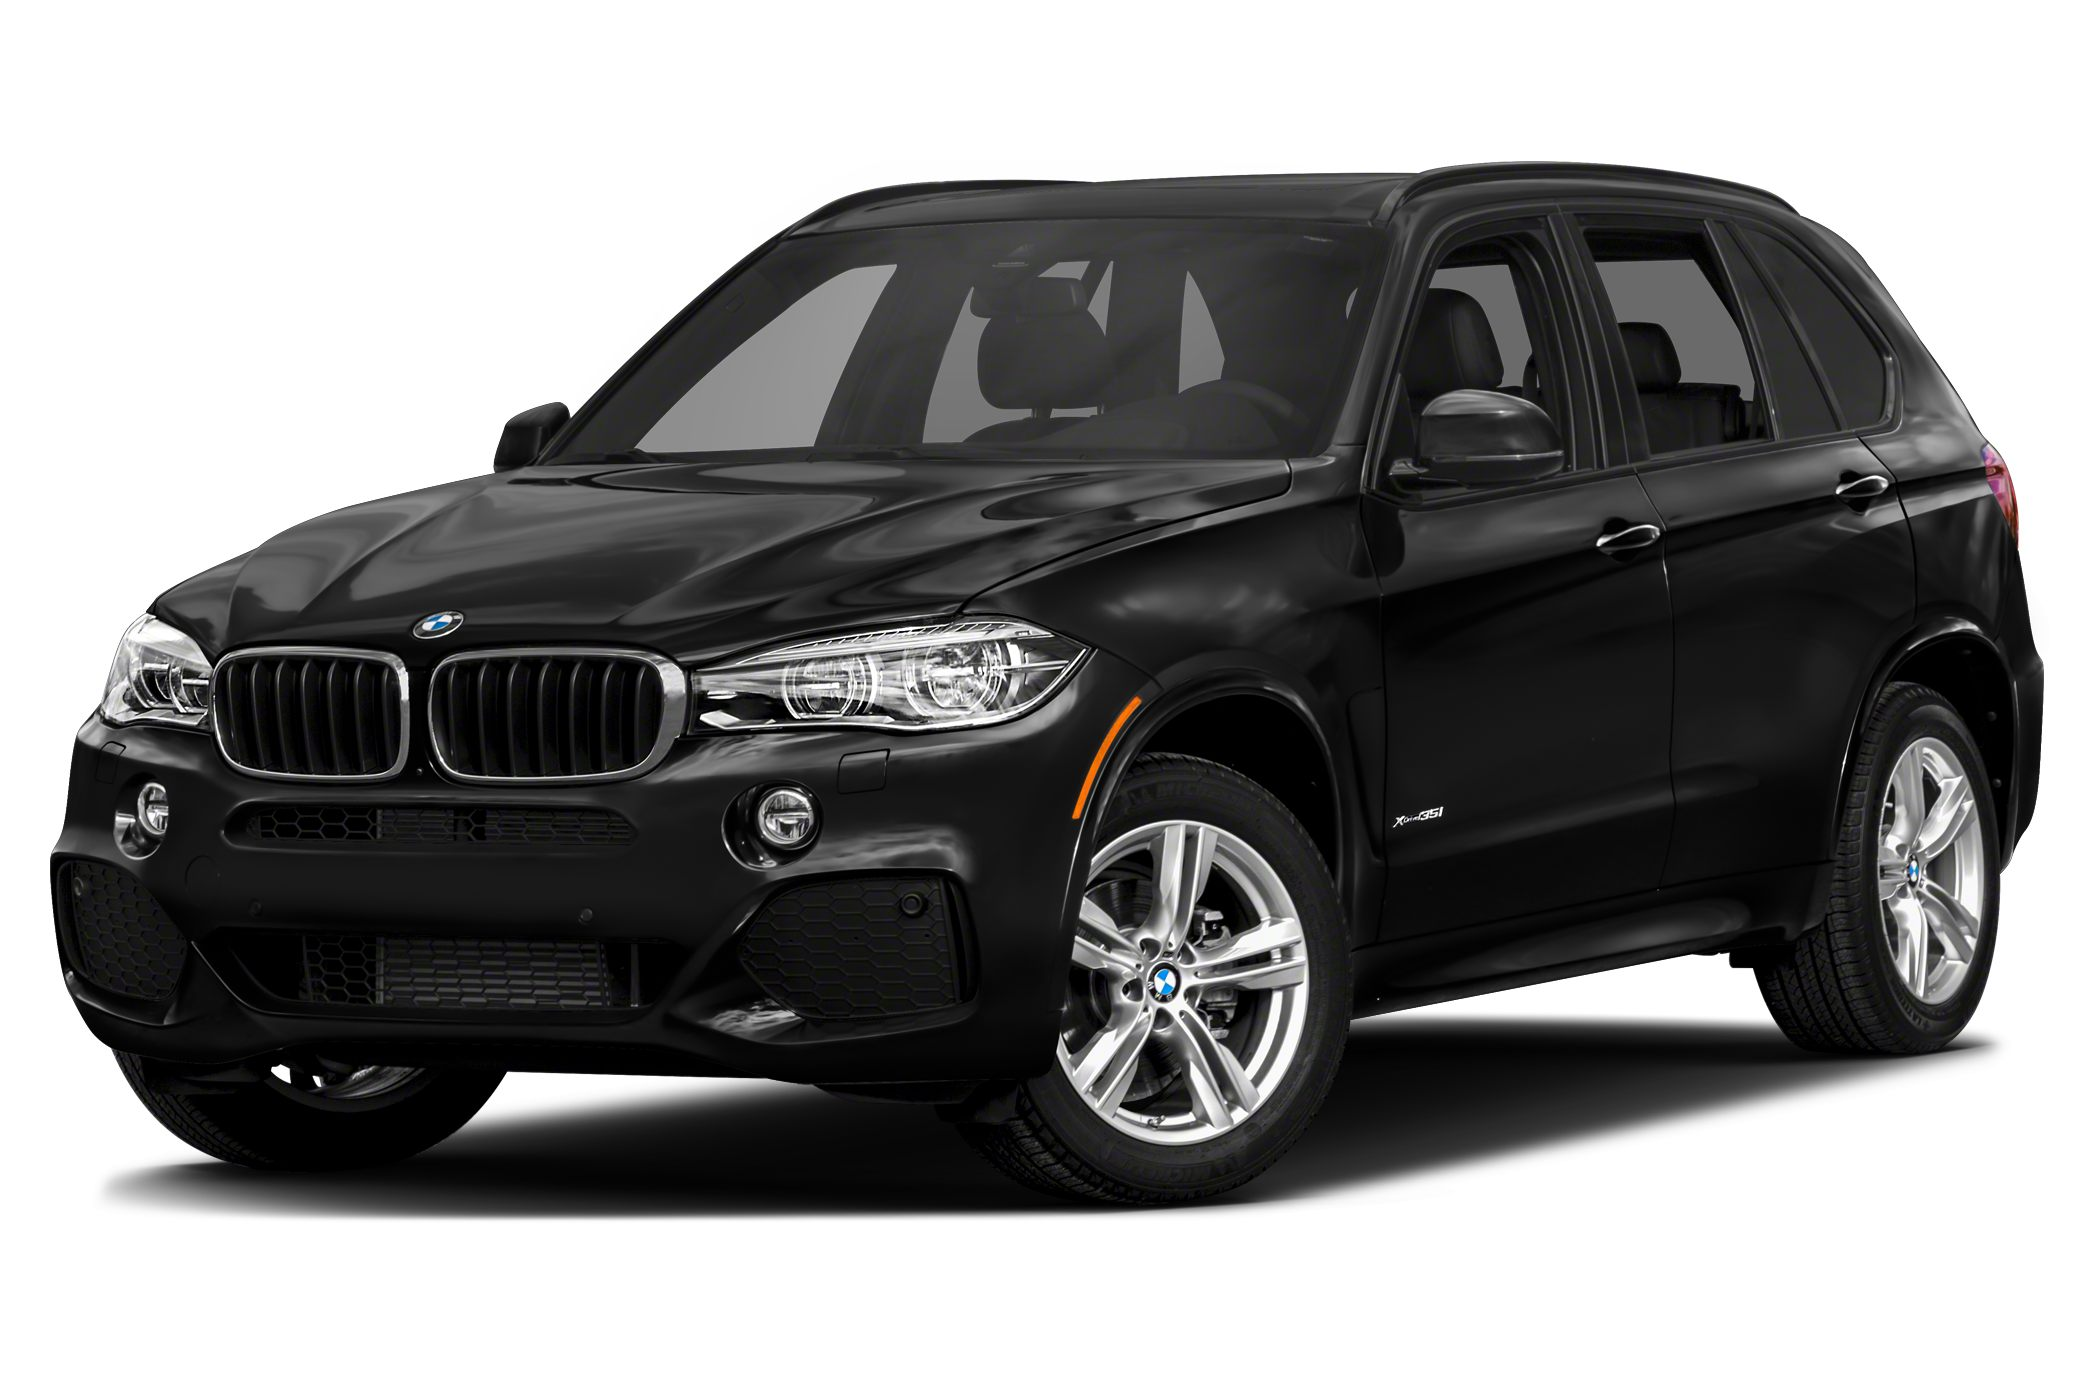 Feds greenlight BMW X5 diesel sales for 2016 [UPDATE ...